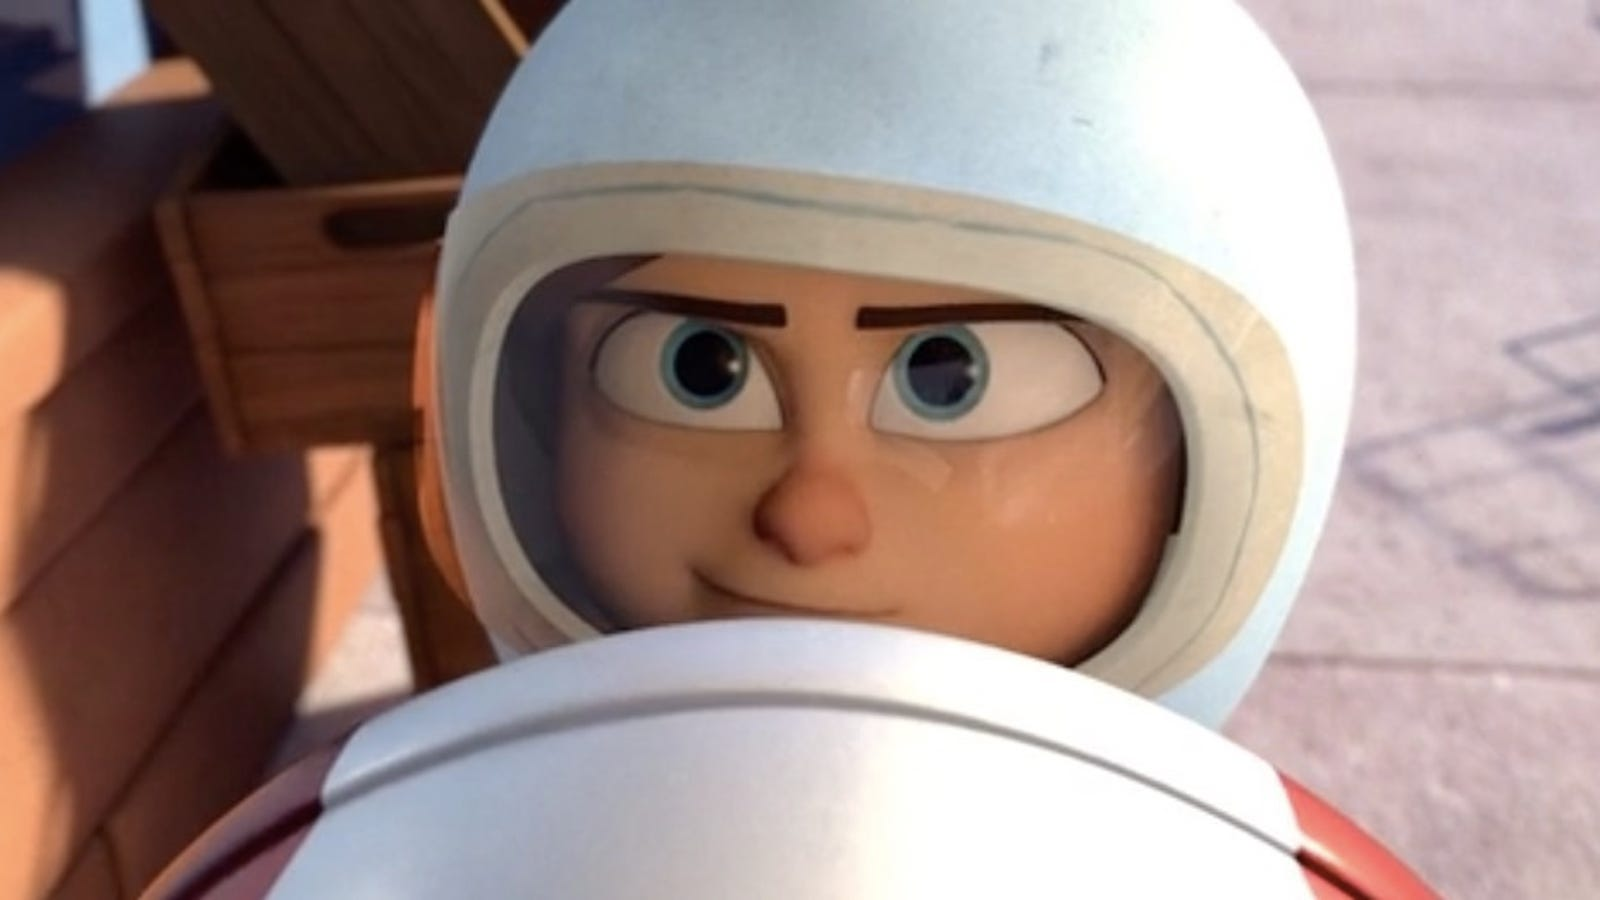 A Would-Be Astronaut Dreams of Space Travel in This Charming Animated Short